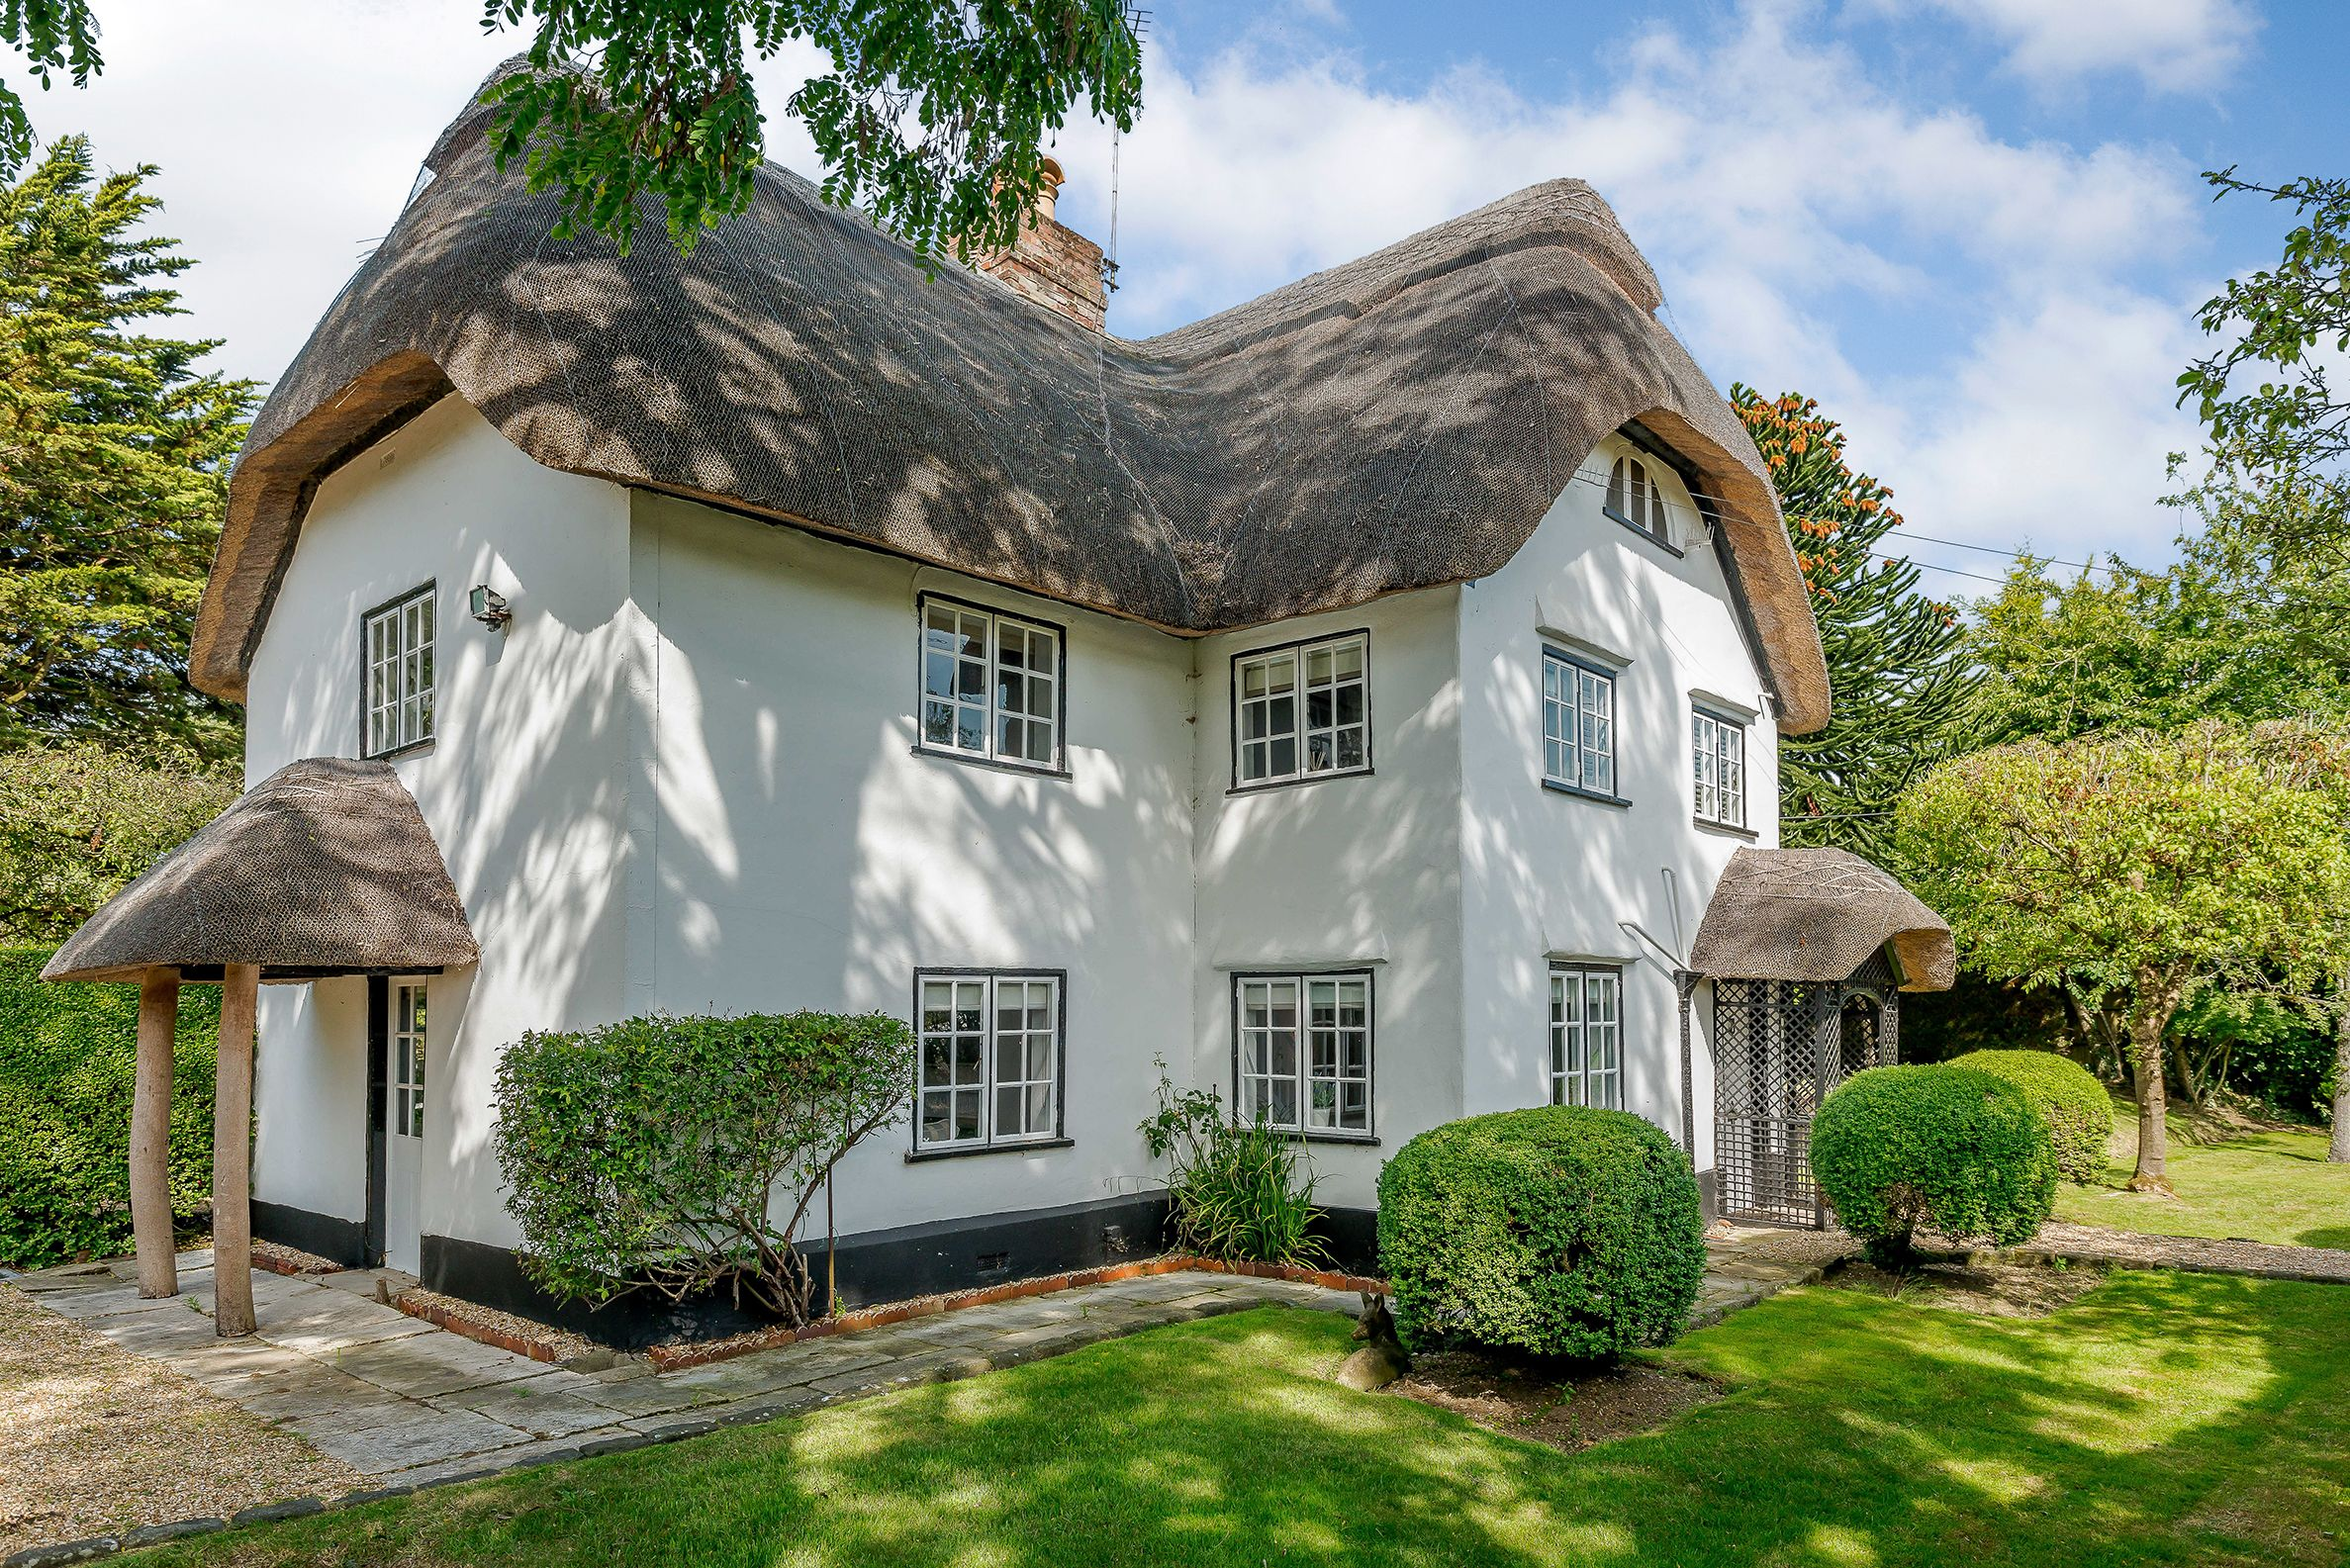 The house that inspired Goldilocks and the Three Bears is for sale in Dorset